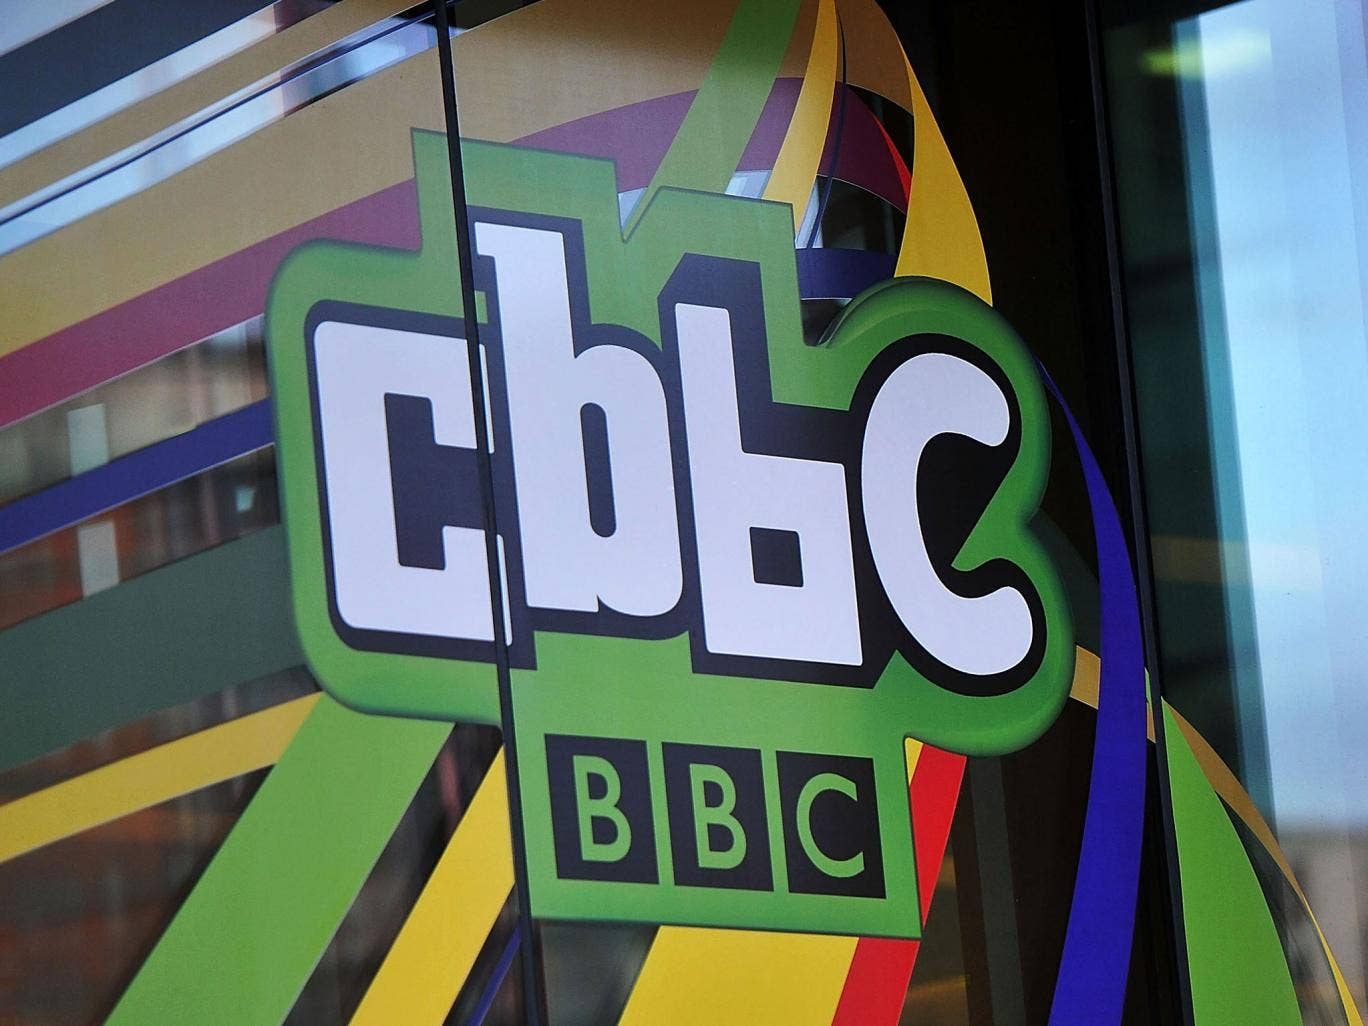 The CBBC studio in Media City in Salford, Manchester.